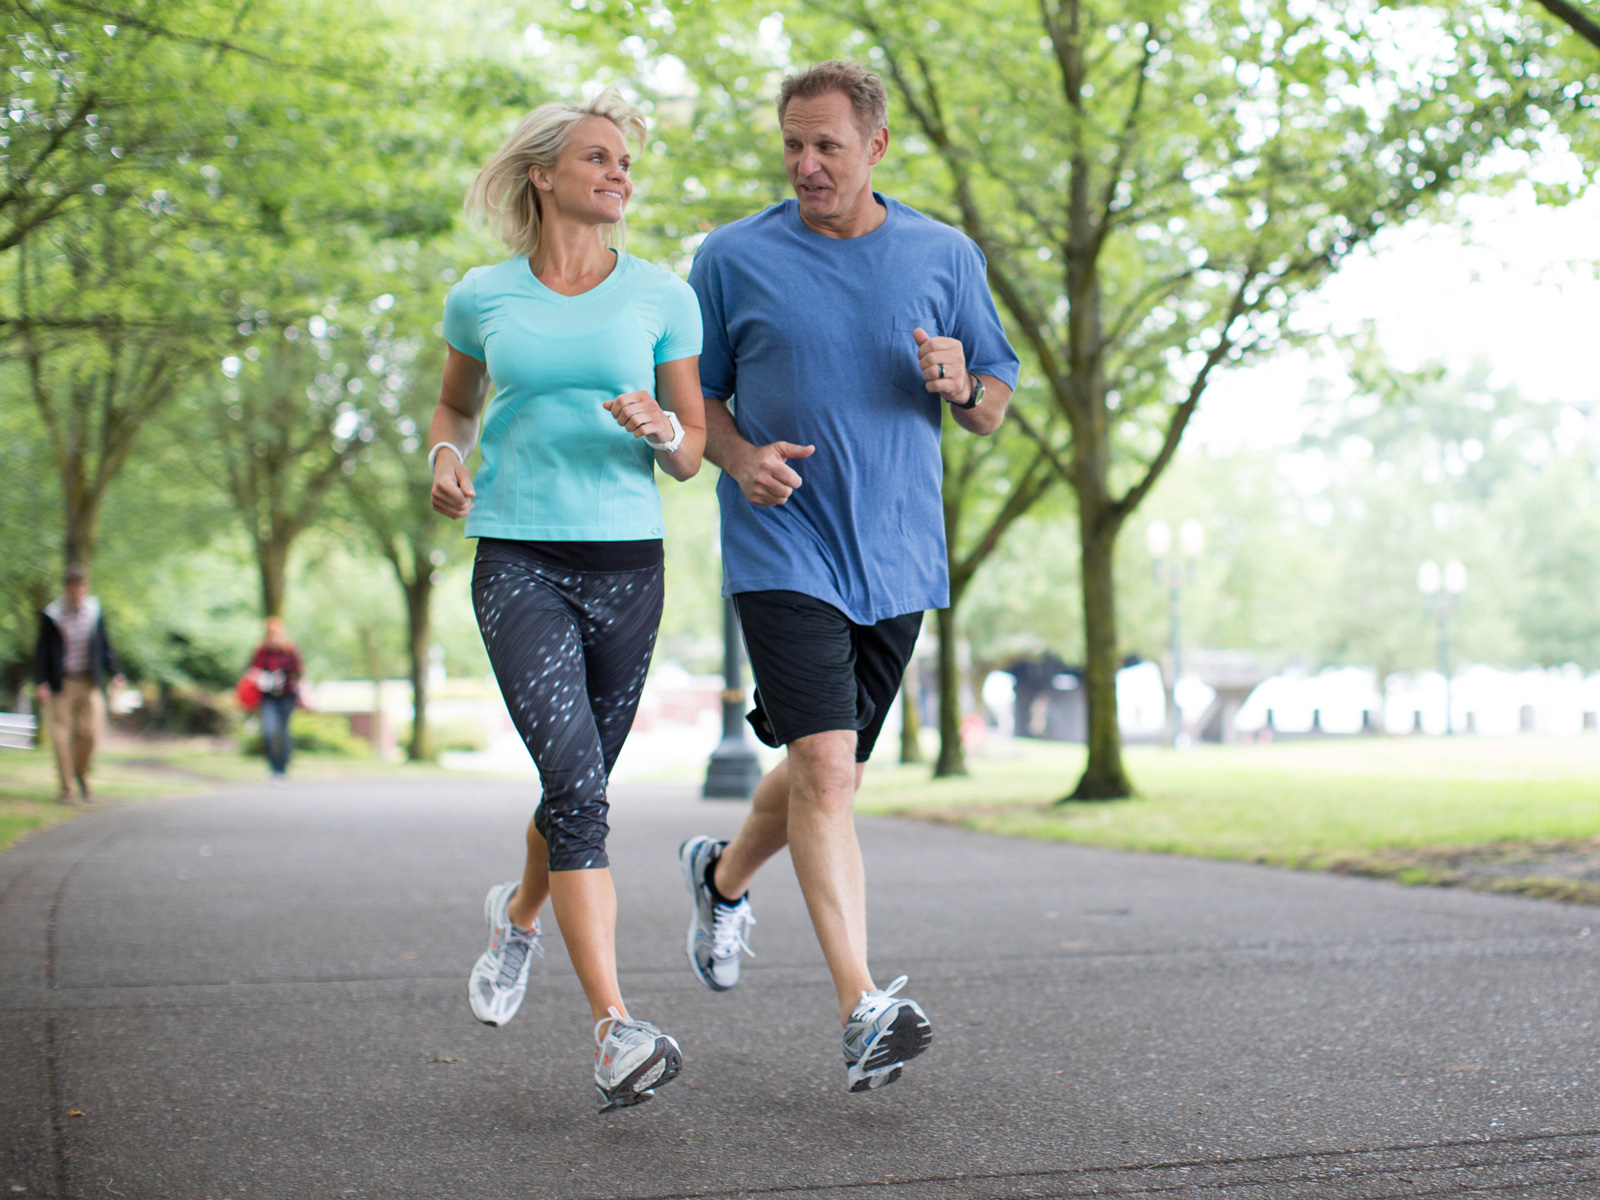 a man and woman enjoy jogging in the park while they wear activity trackers